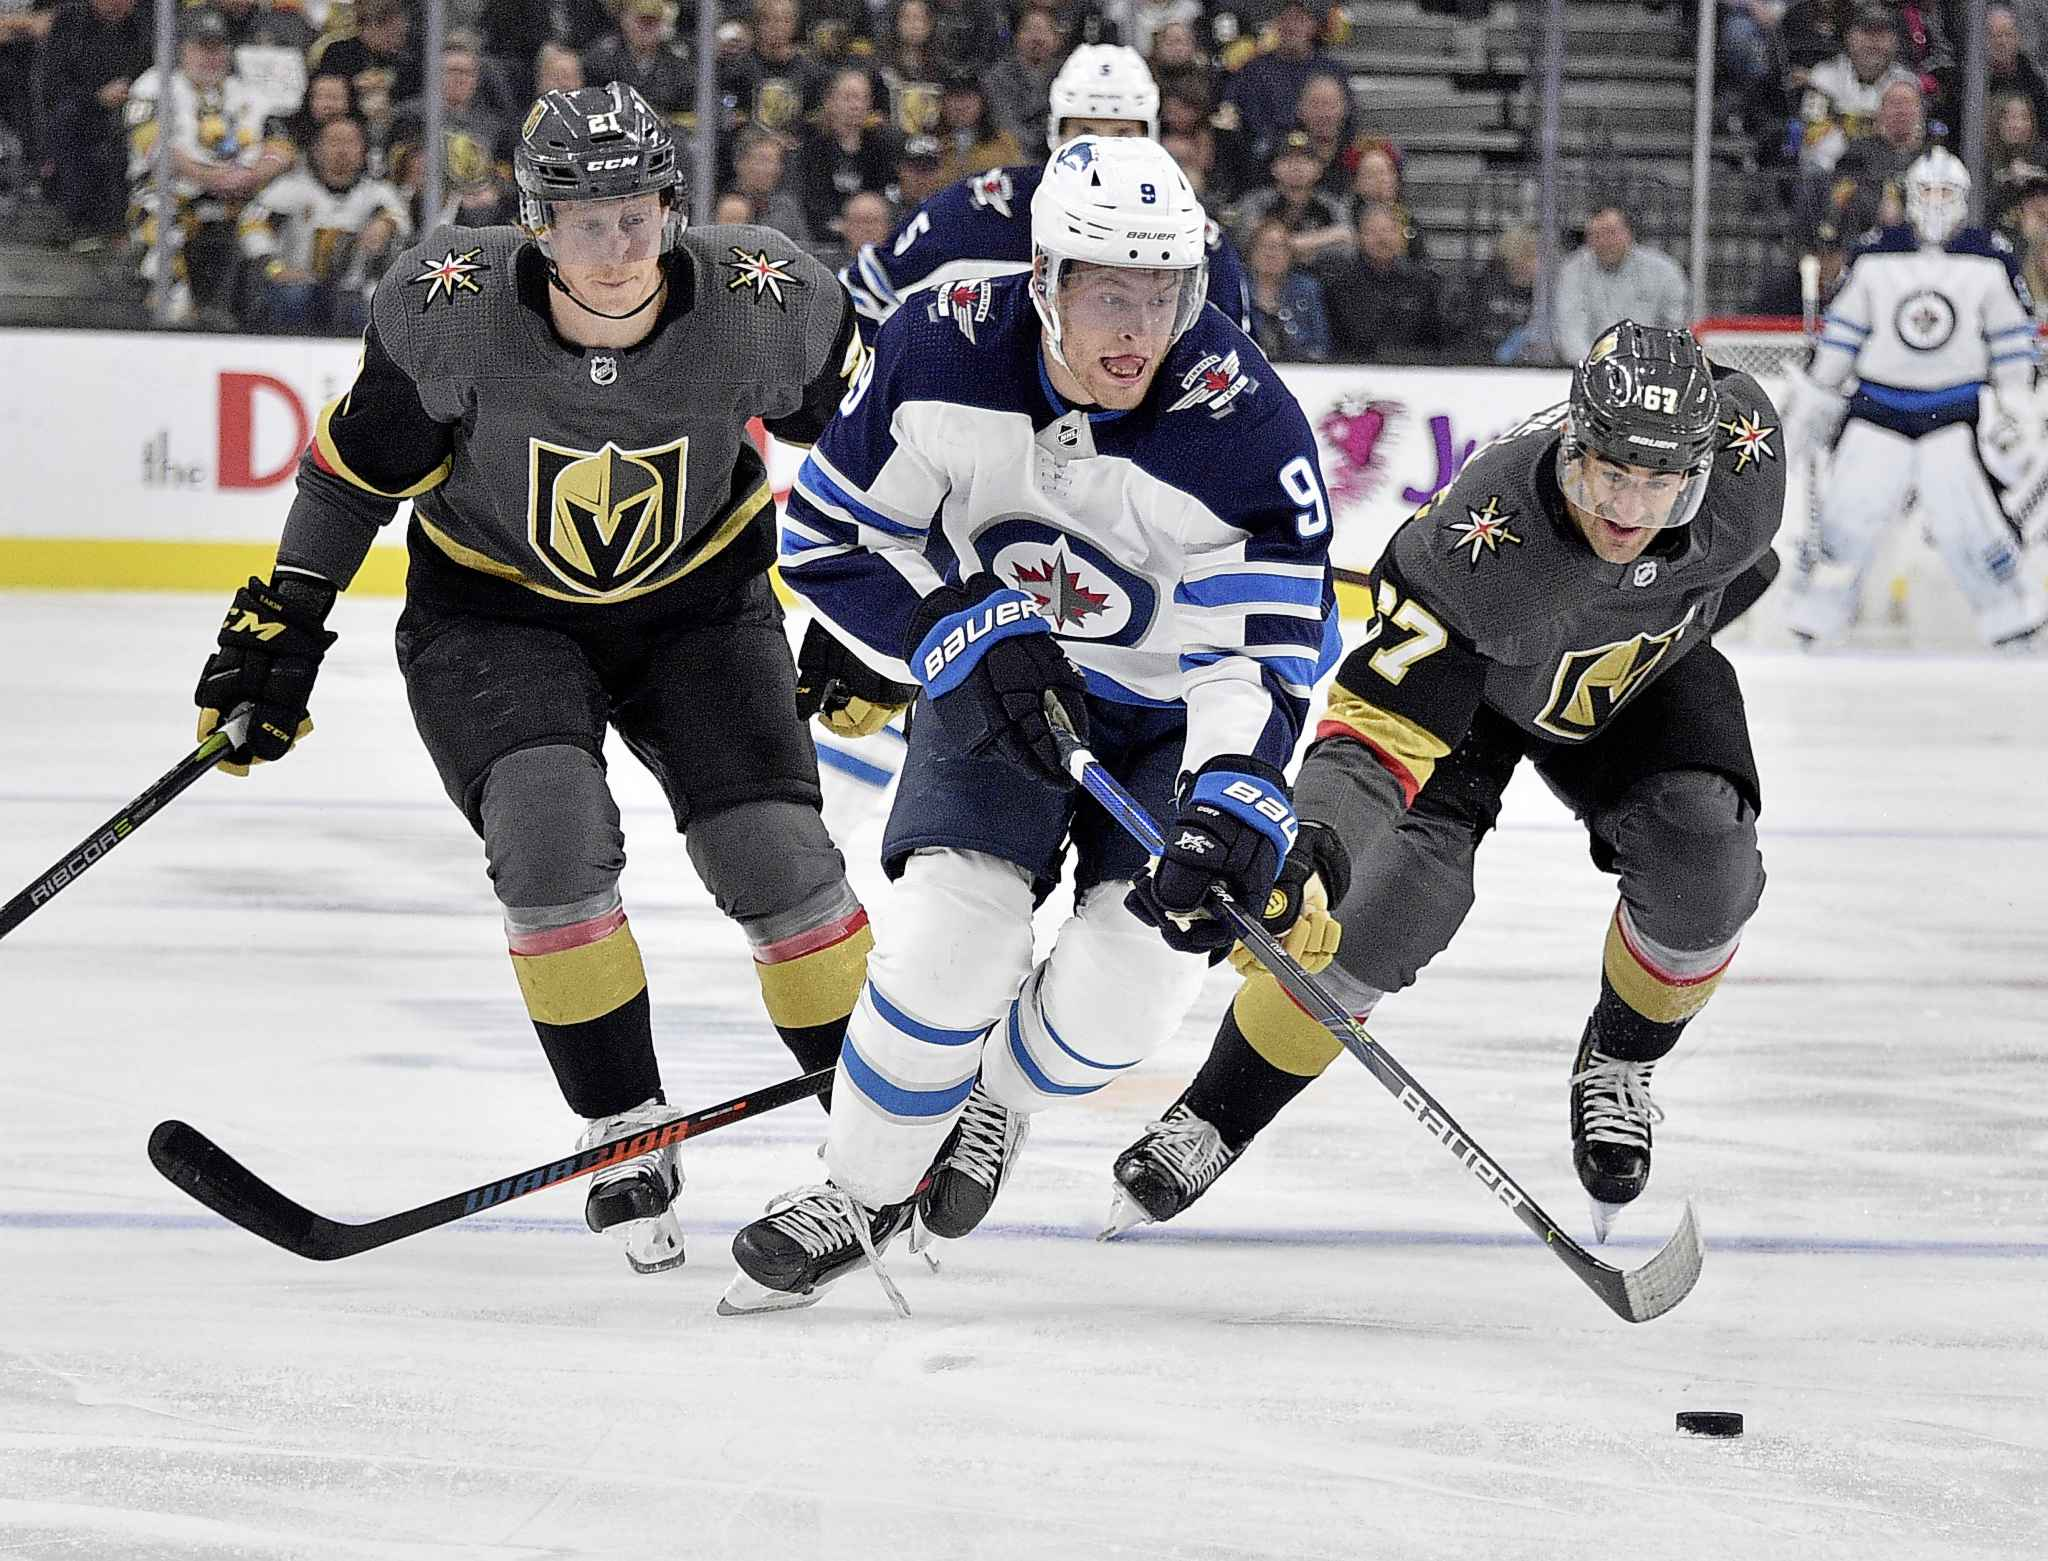 Winnipeg Jets center Andrew Copp (9) skates with the puck against Vegas Golden Knights center Cody Eakin (21) and left wing Max Pacioretty during the first period of an NHL hockey game Saturday, Nov. 2, 2019, in Las Vegas. (AP Photo/David Becker)